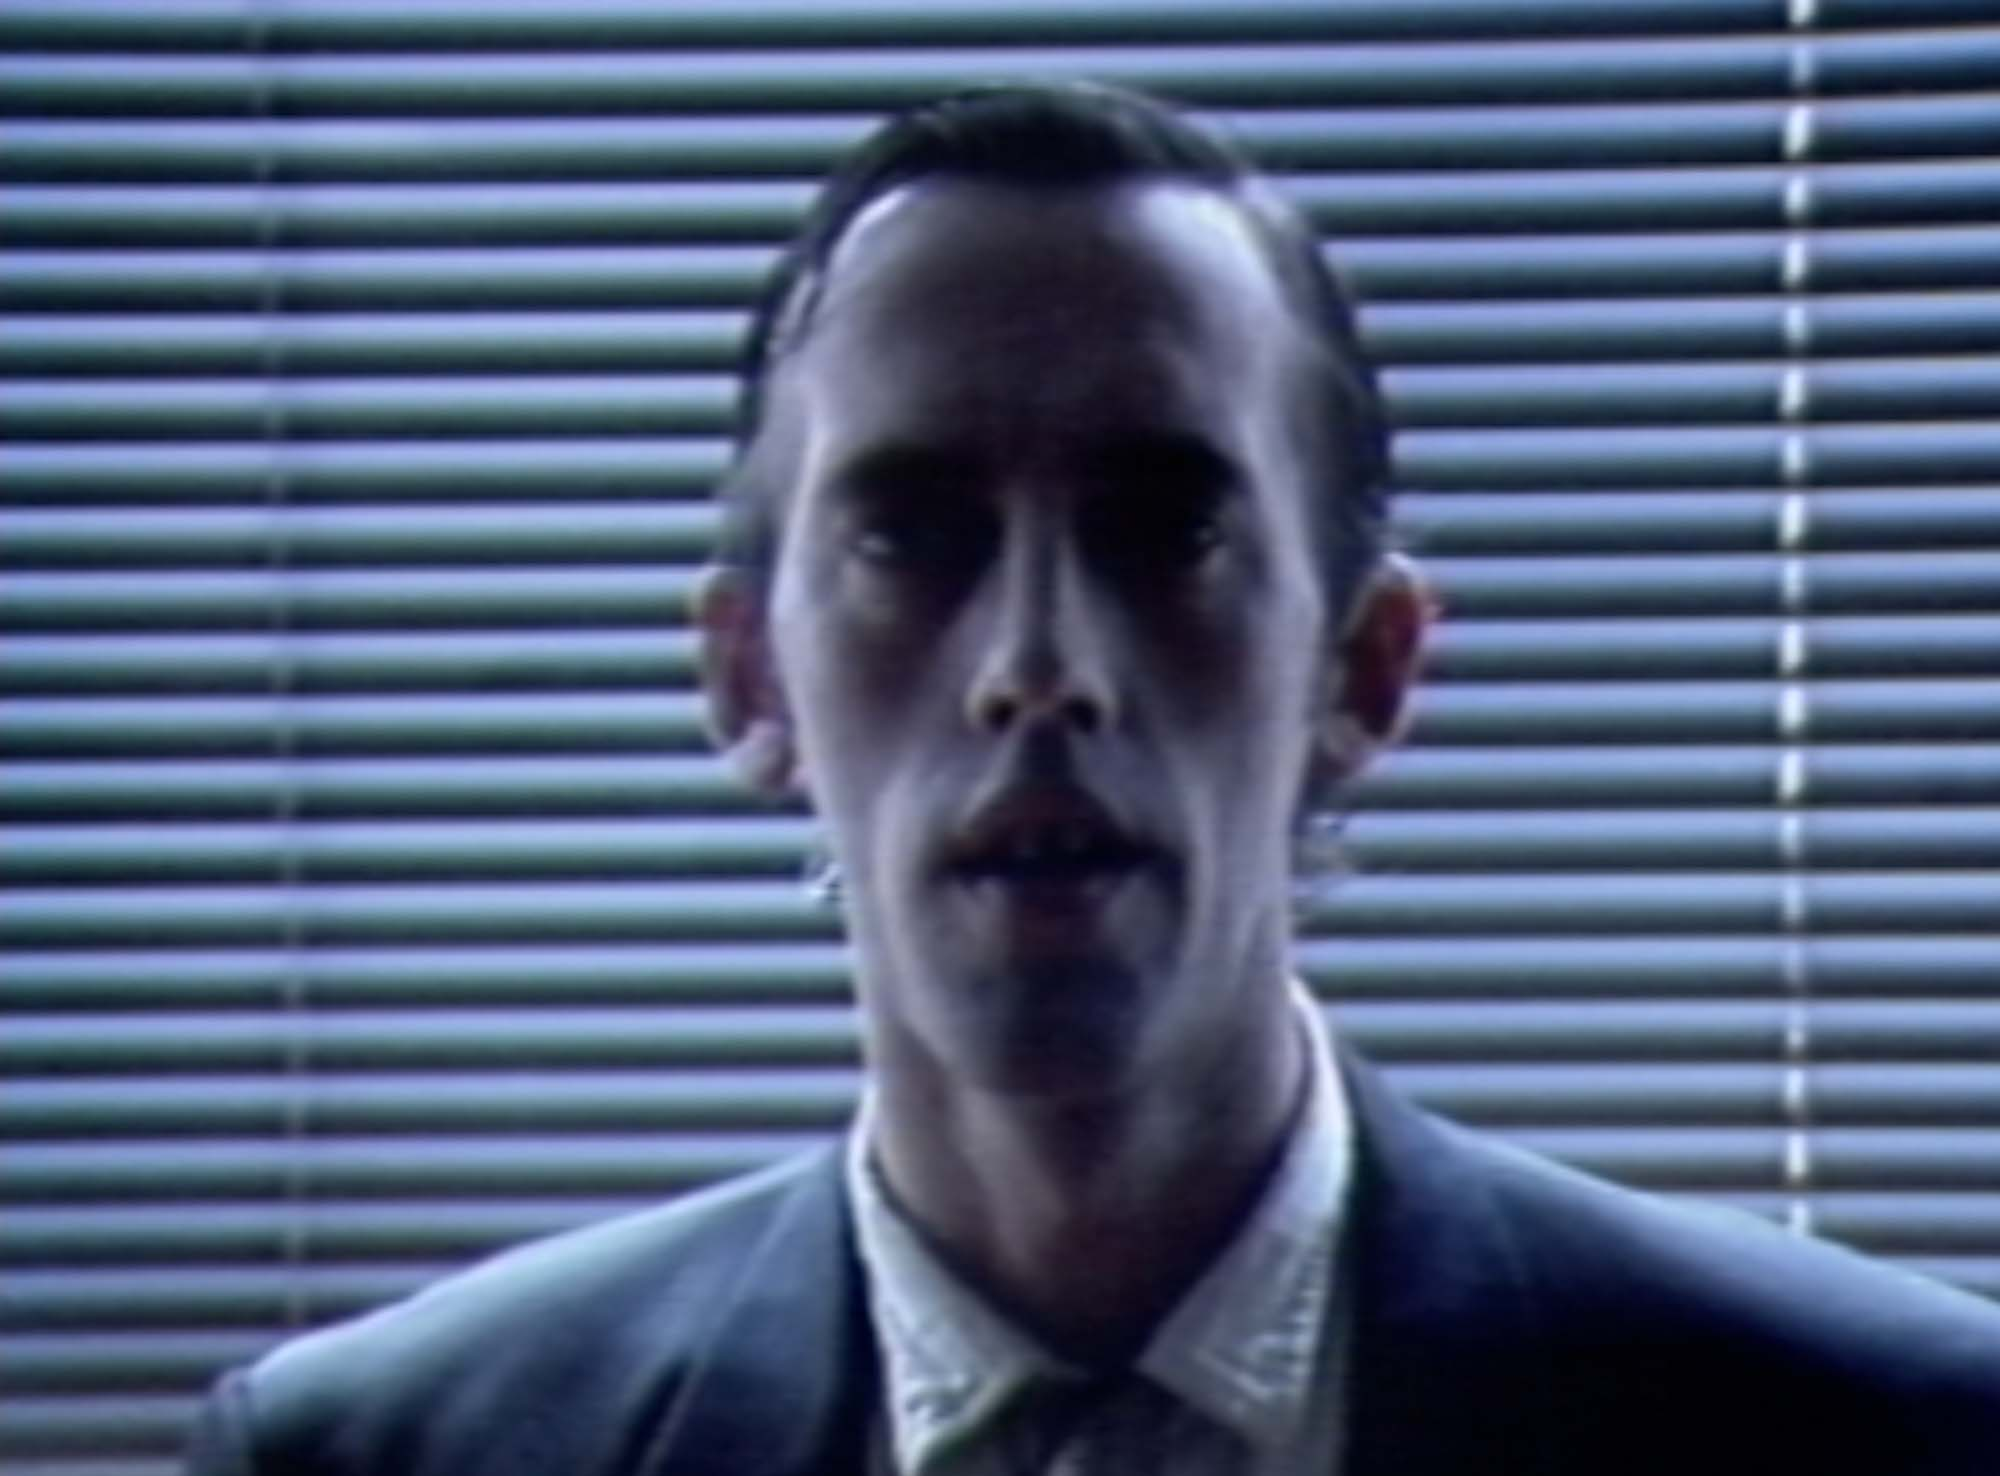 """Tom Rubnitz & David Wojnarowicz, """"Listen to This"""" (1992). Image copyright of the artist, courtesy of Video Data Bank, www.vdb.org, School of the Art Institute of Chicago"""